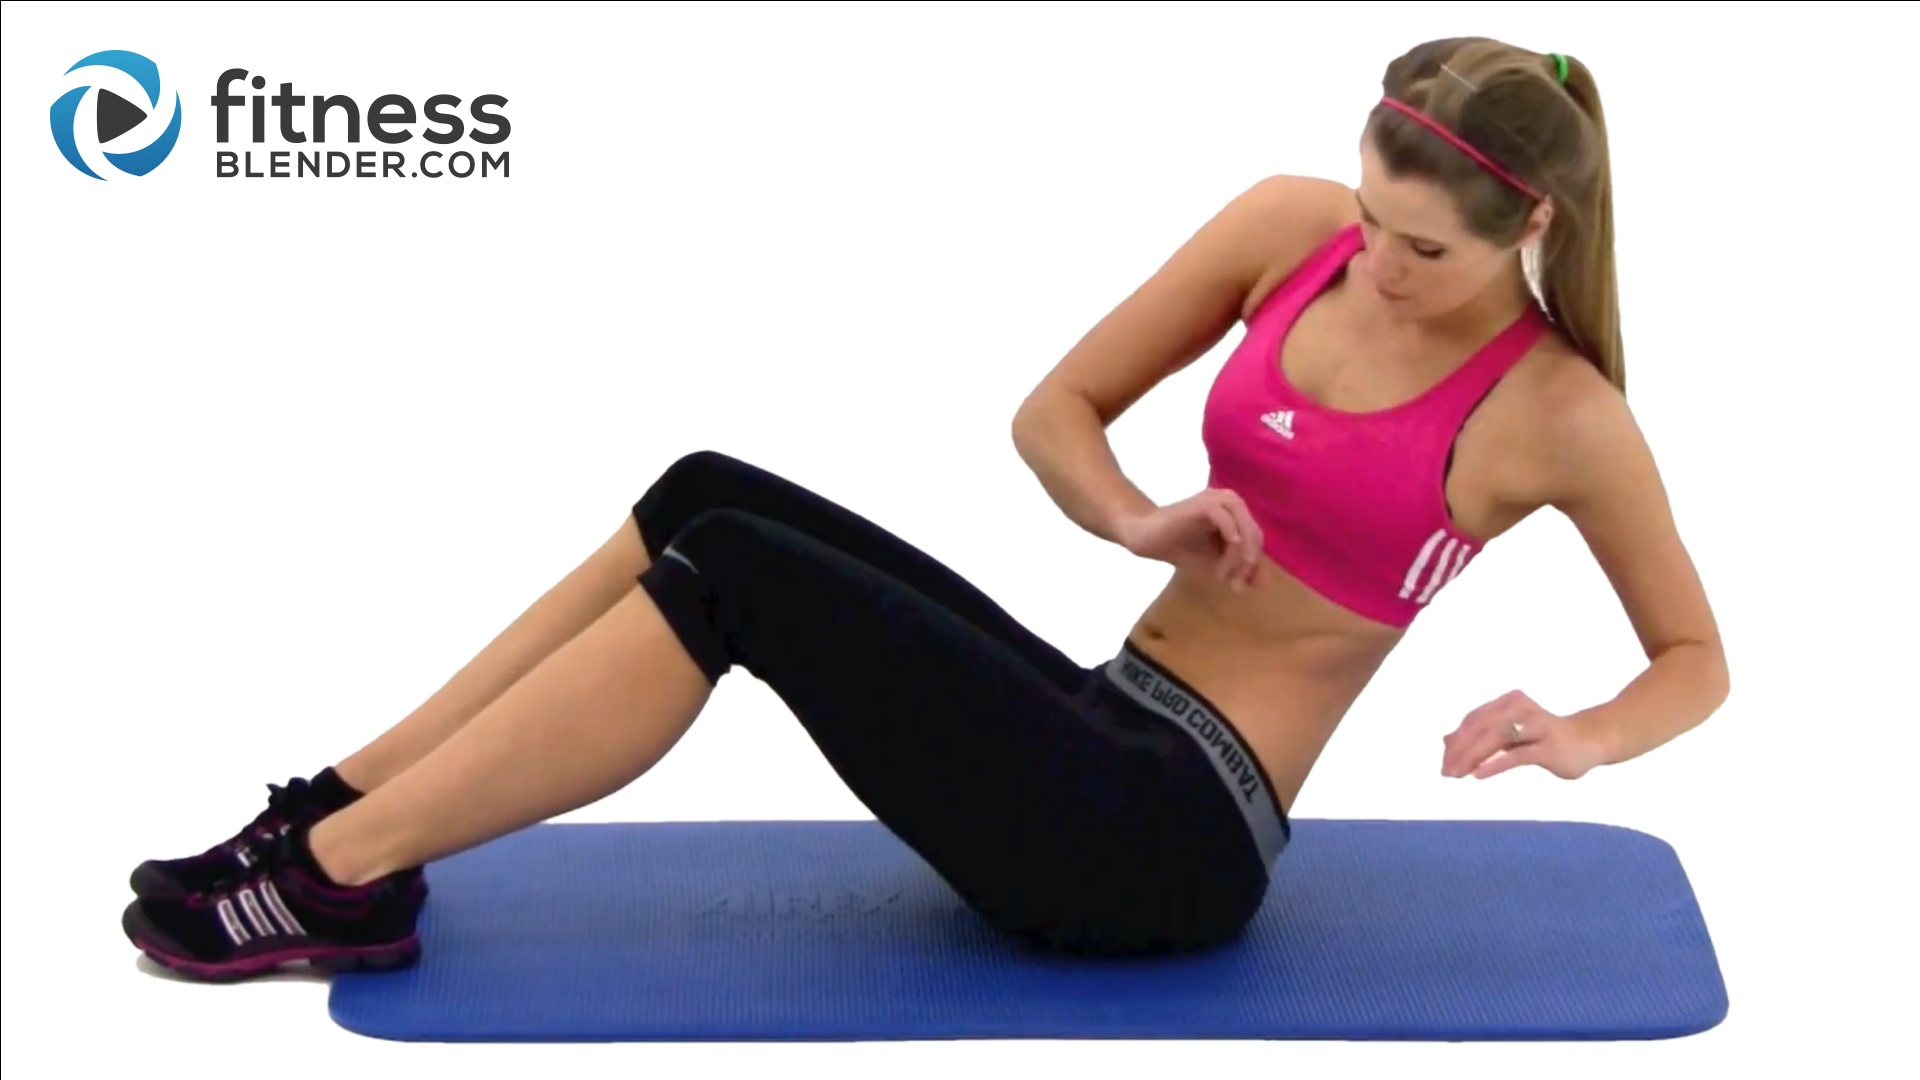 10 Min Abs Workout At Home Abdominal And Oblique Exercises Fitness Blender